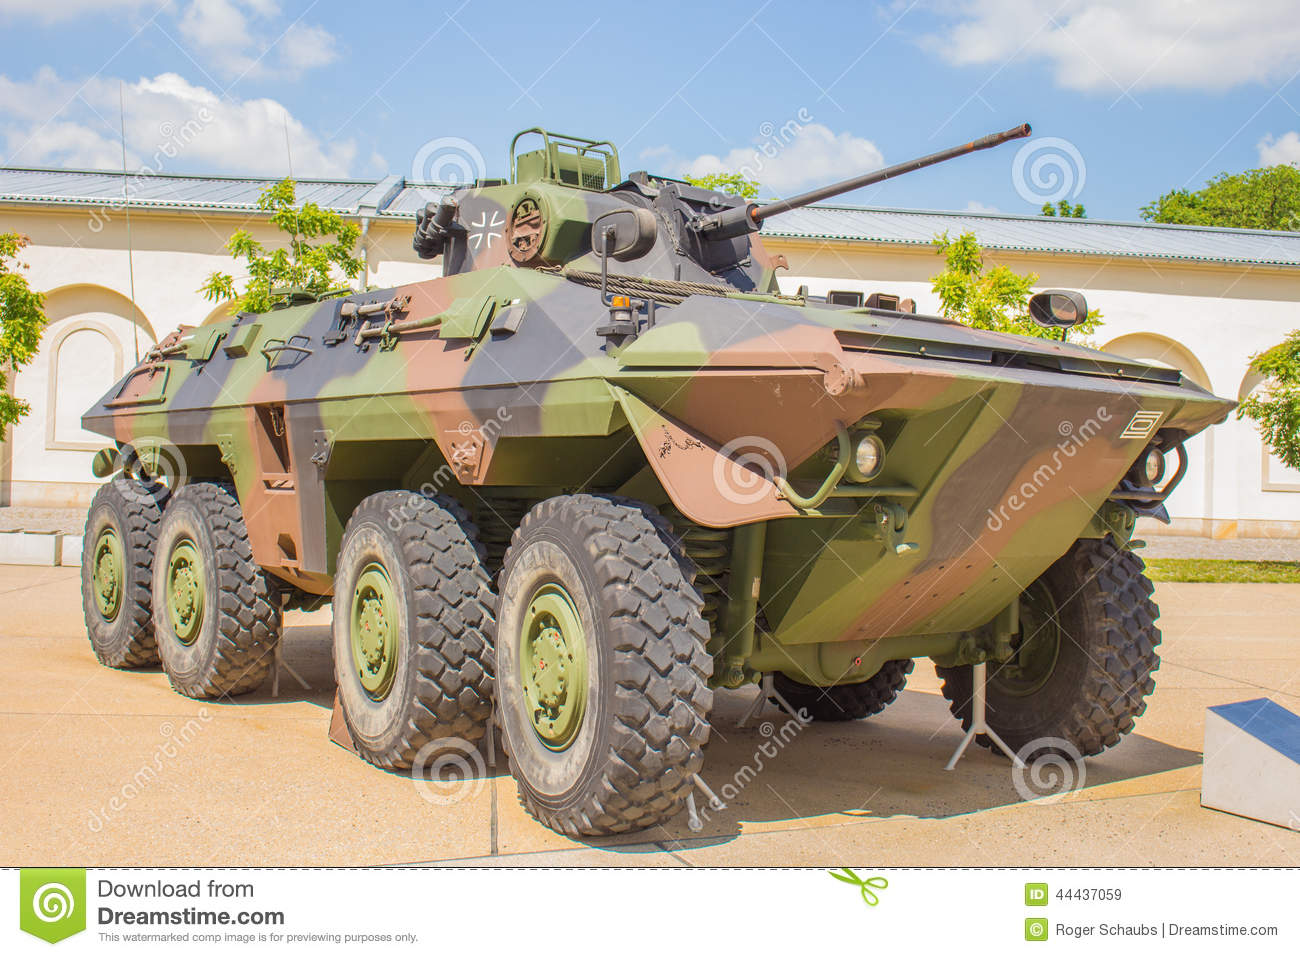 Military Tank Germany - Luchs / Lynx Stock Photo - Image: 44437059